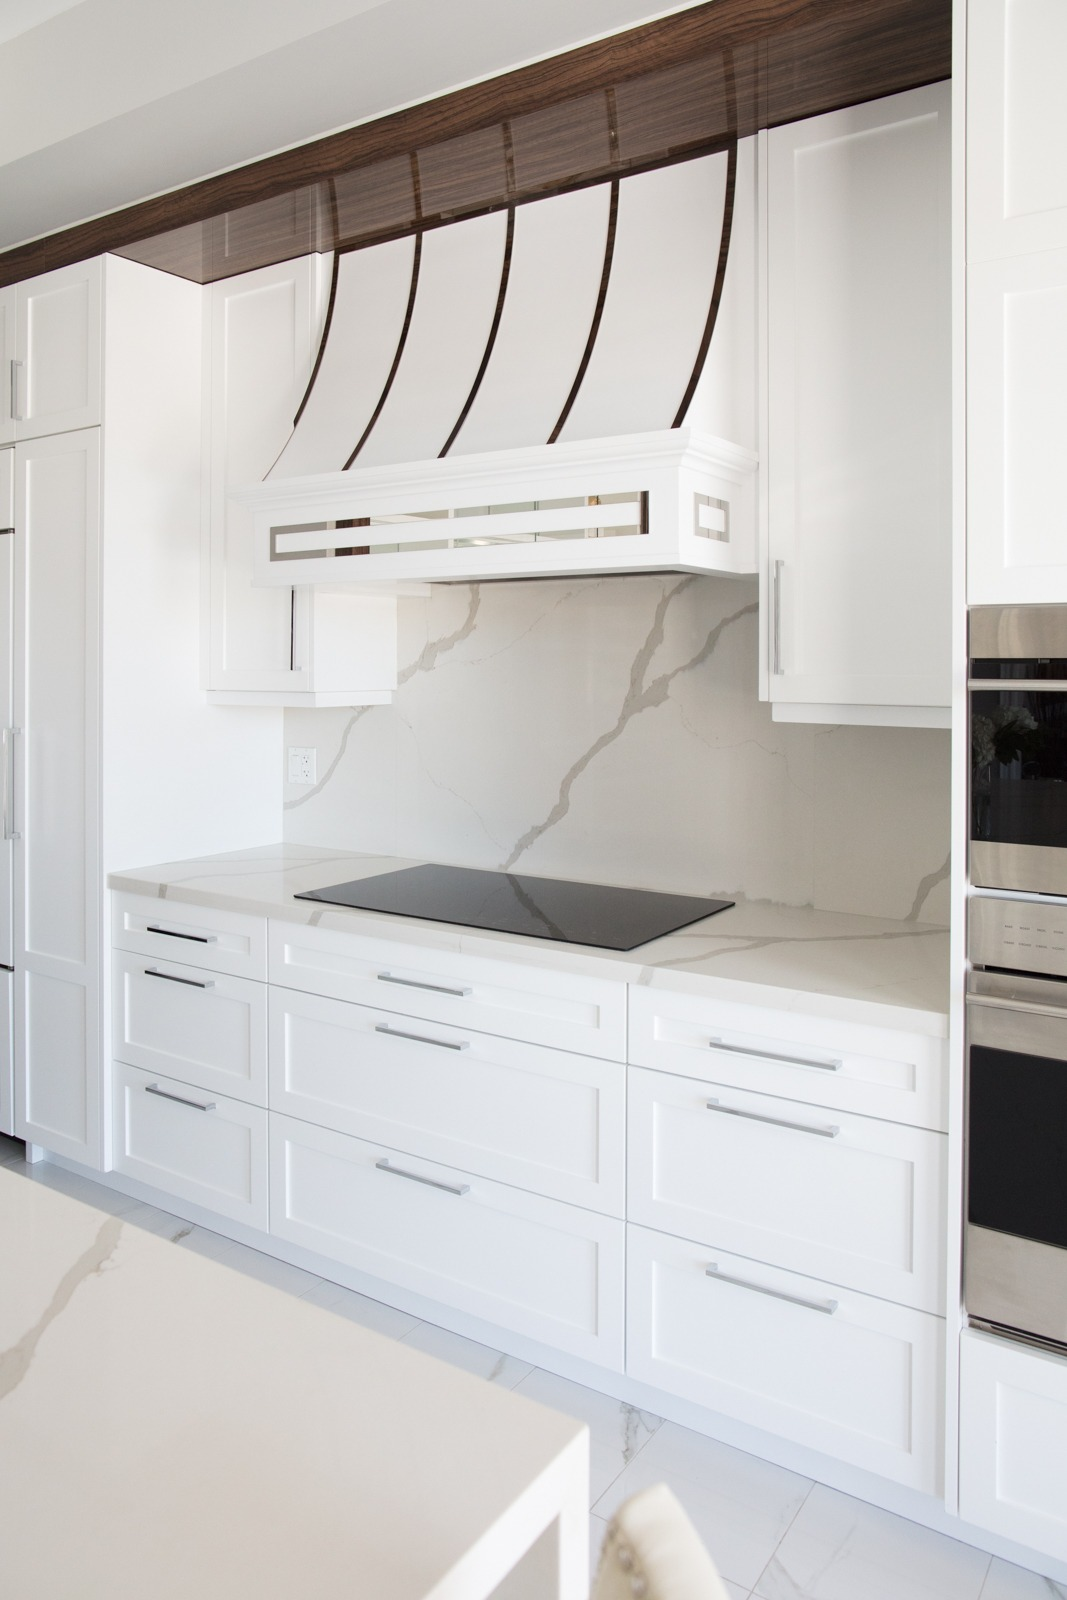 White Range Hood with Stainless Steel Accents